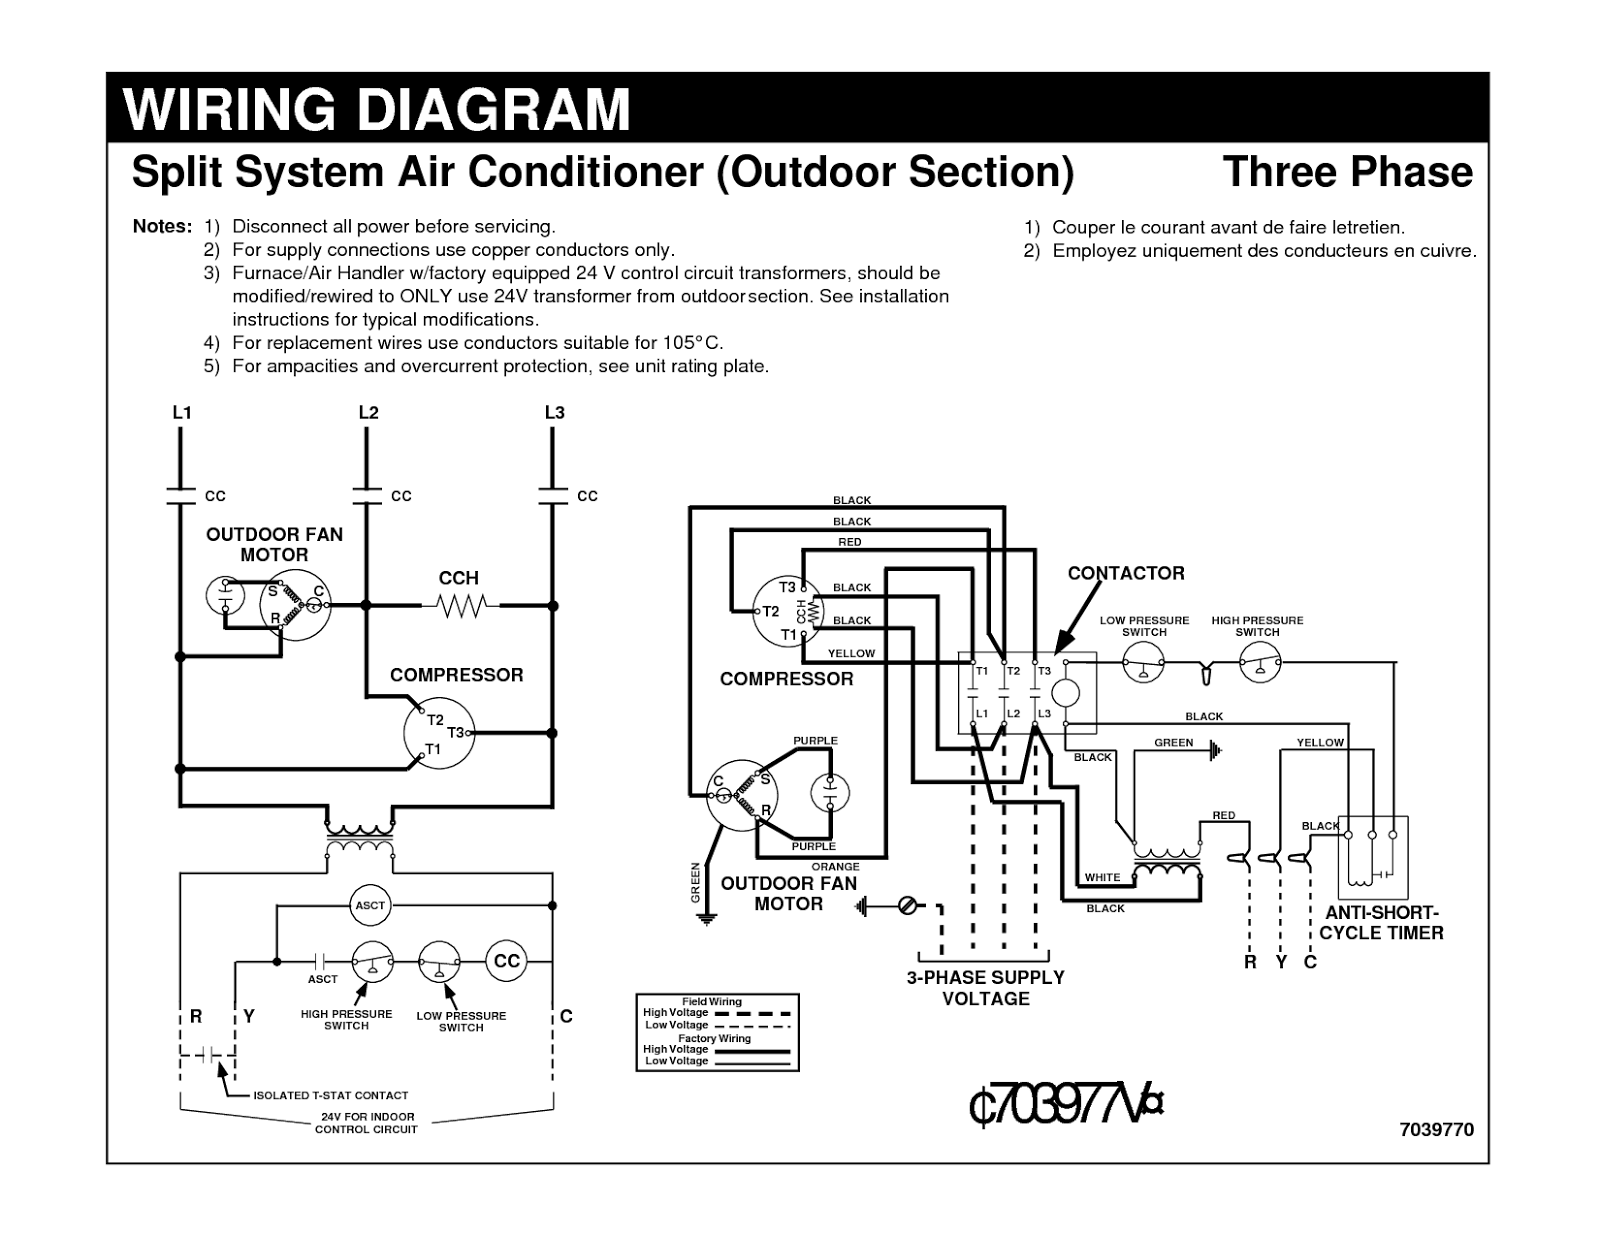 ac schematic wiring 240v ac schematic electrical wiring diagrams for air conditioning systems ...